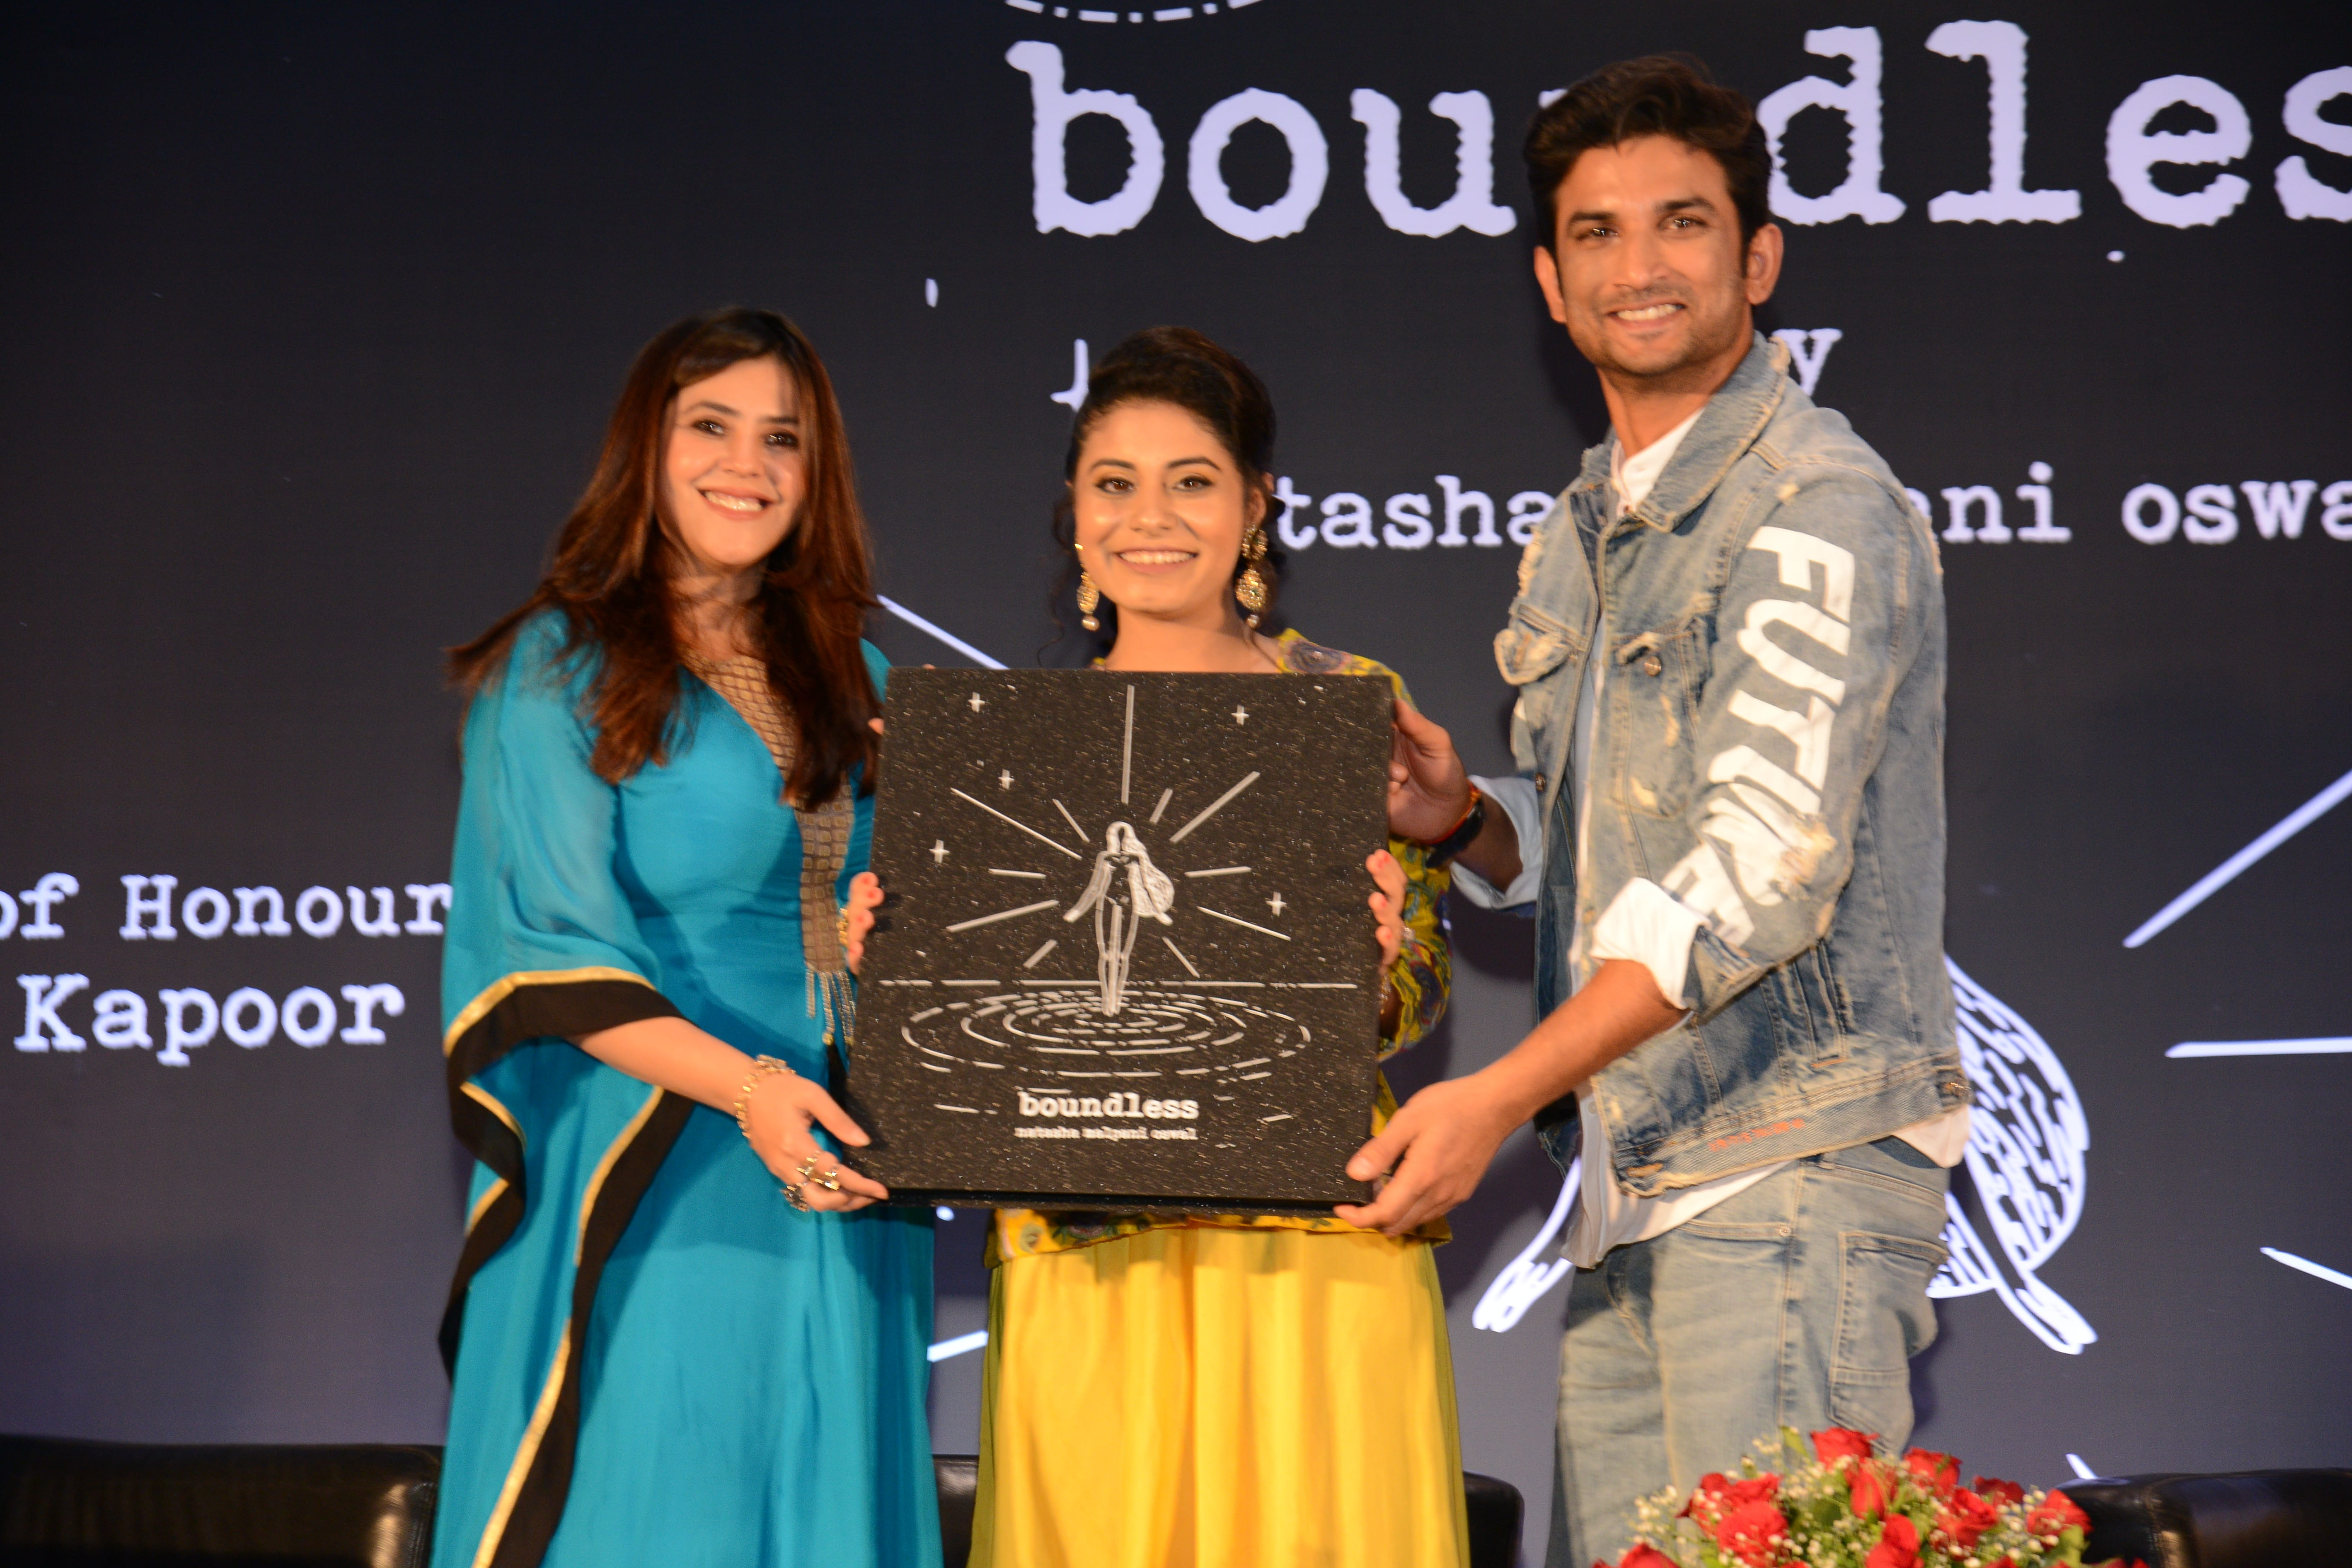 Natasha Malpani Oswal launches her debut poetry book – Boundless